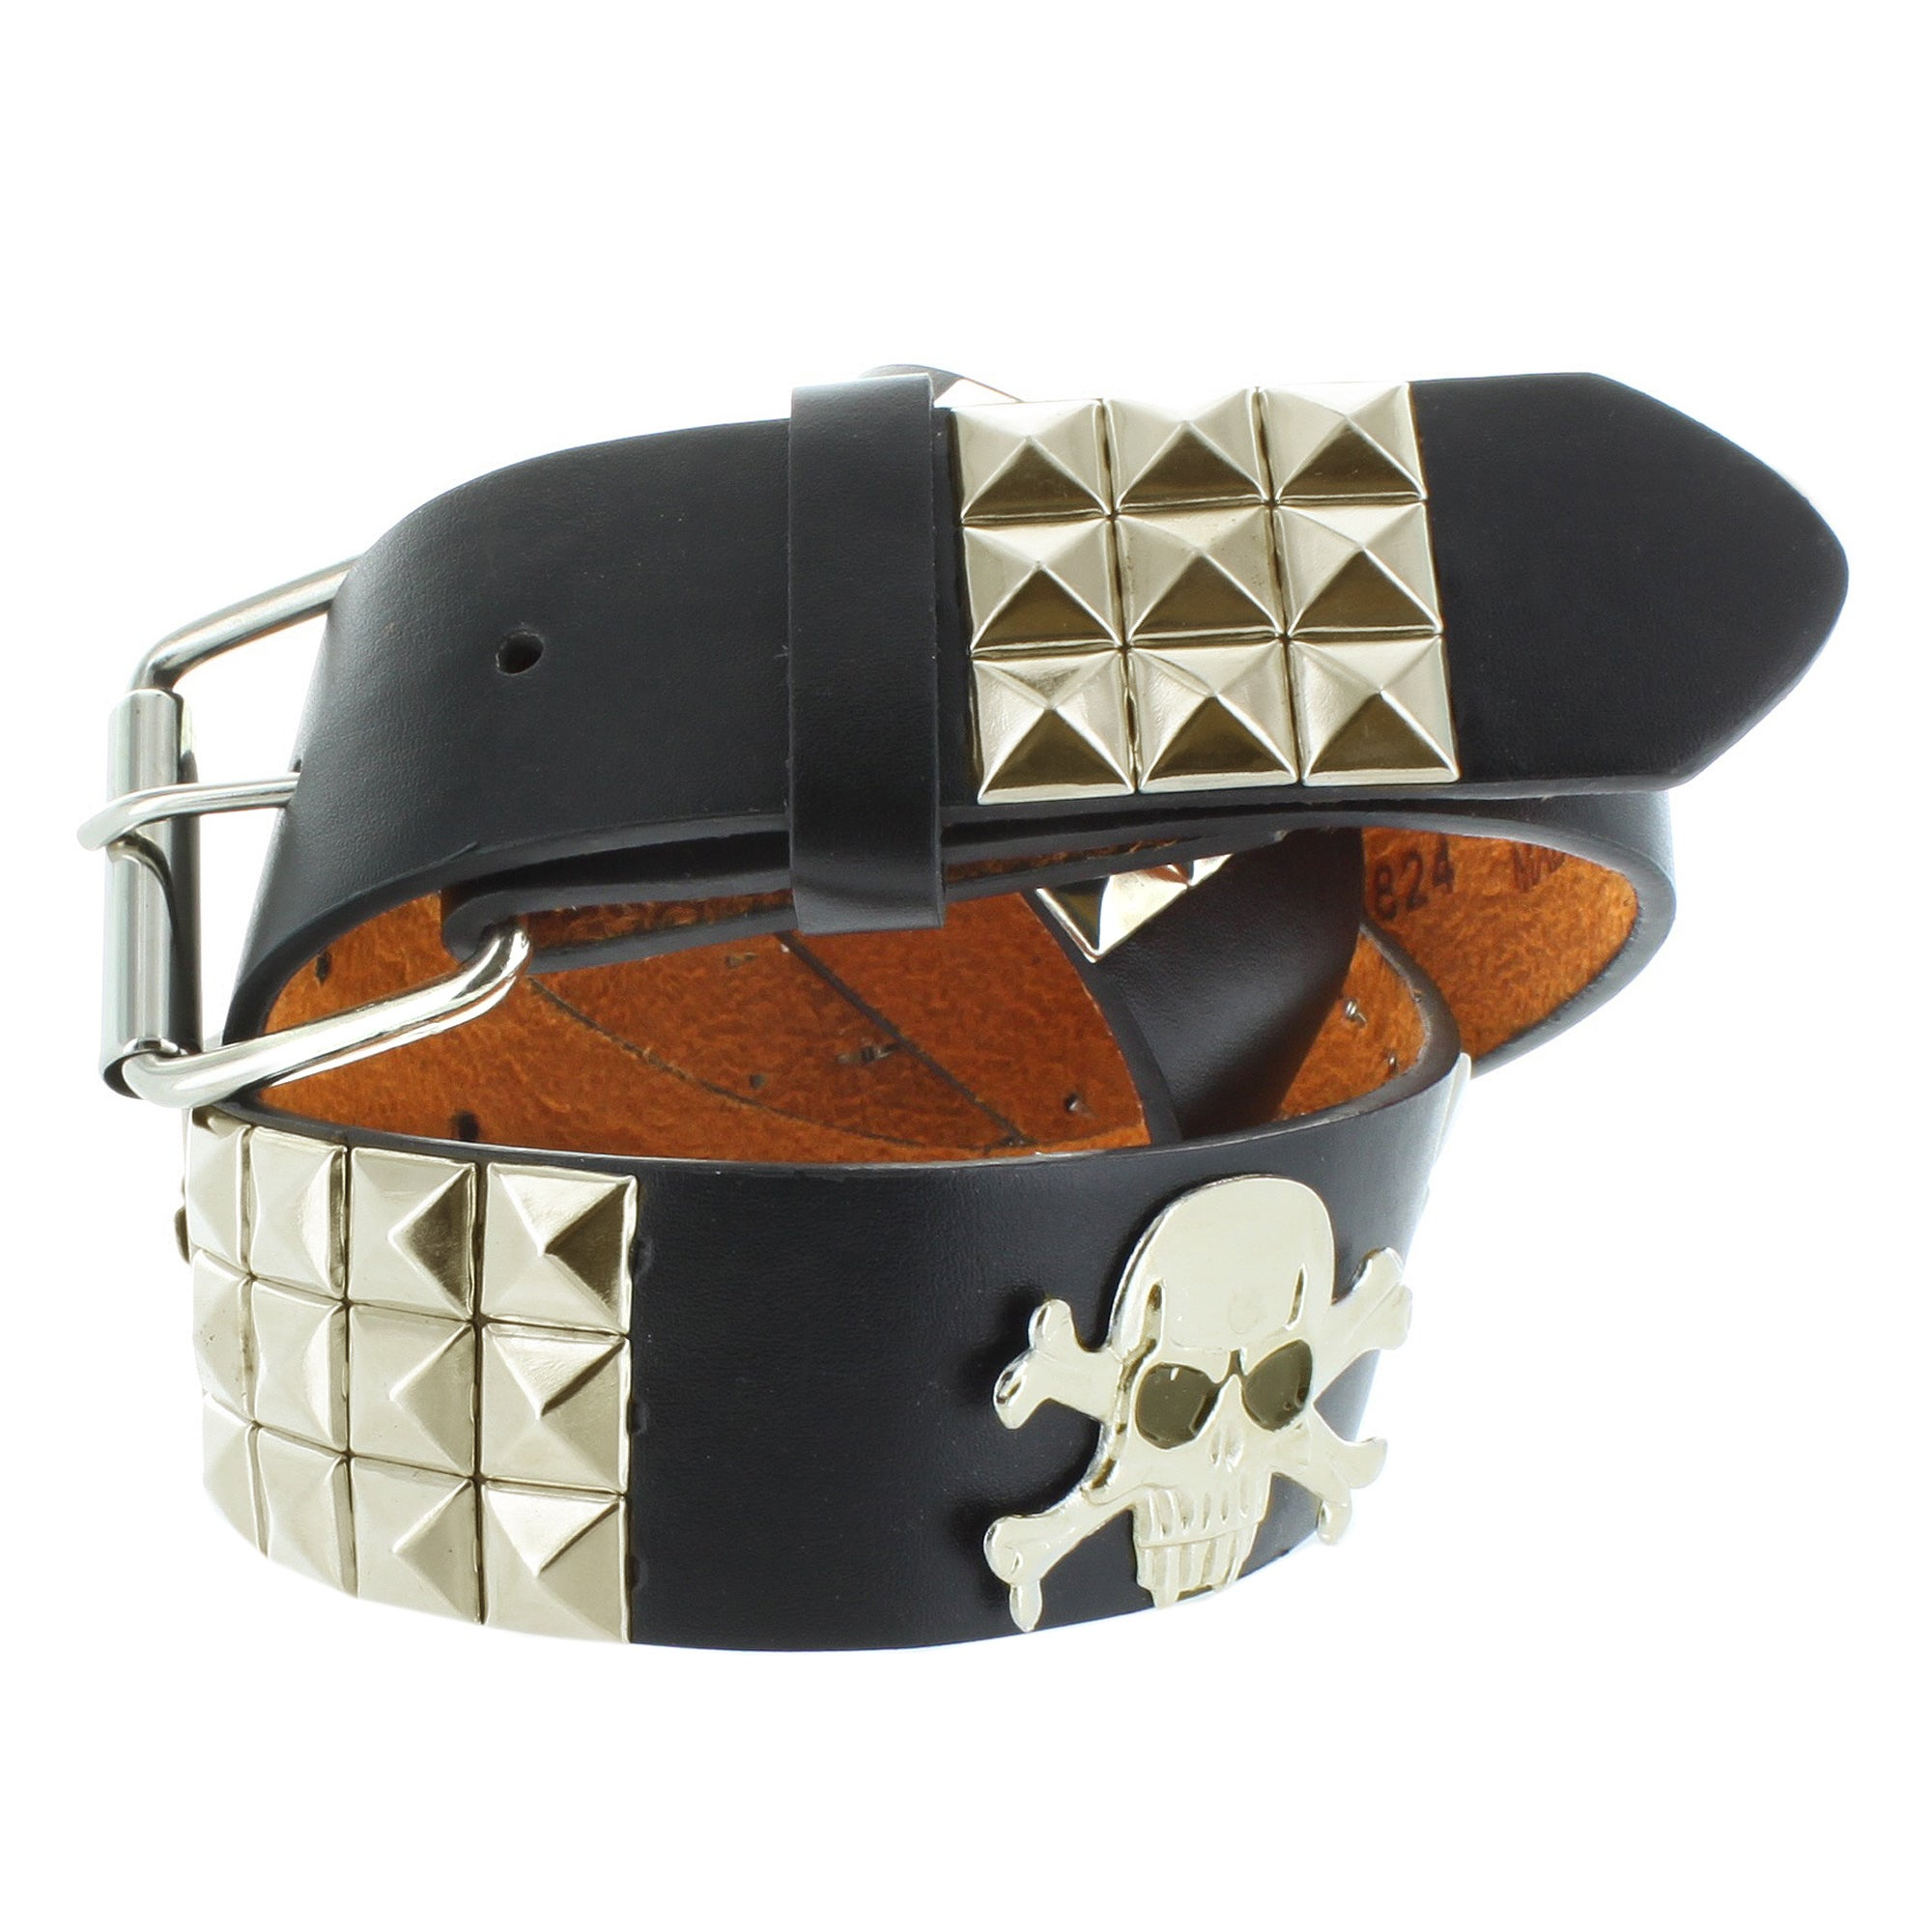 Faddism Men's Genuine Leather Pyramid Studded/ Skull Deco...